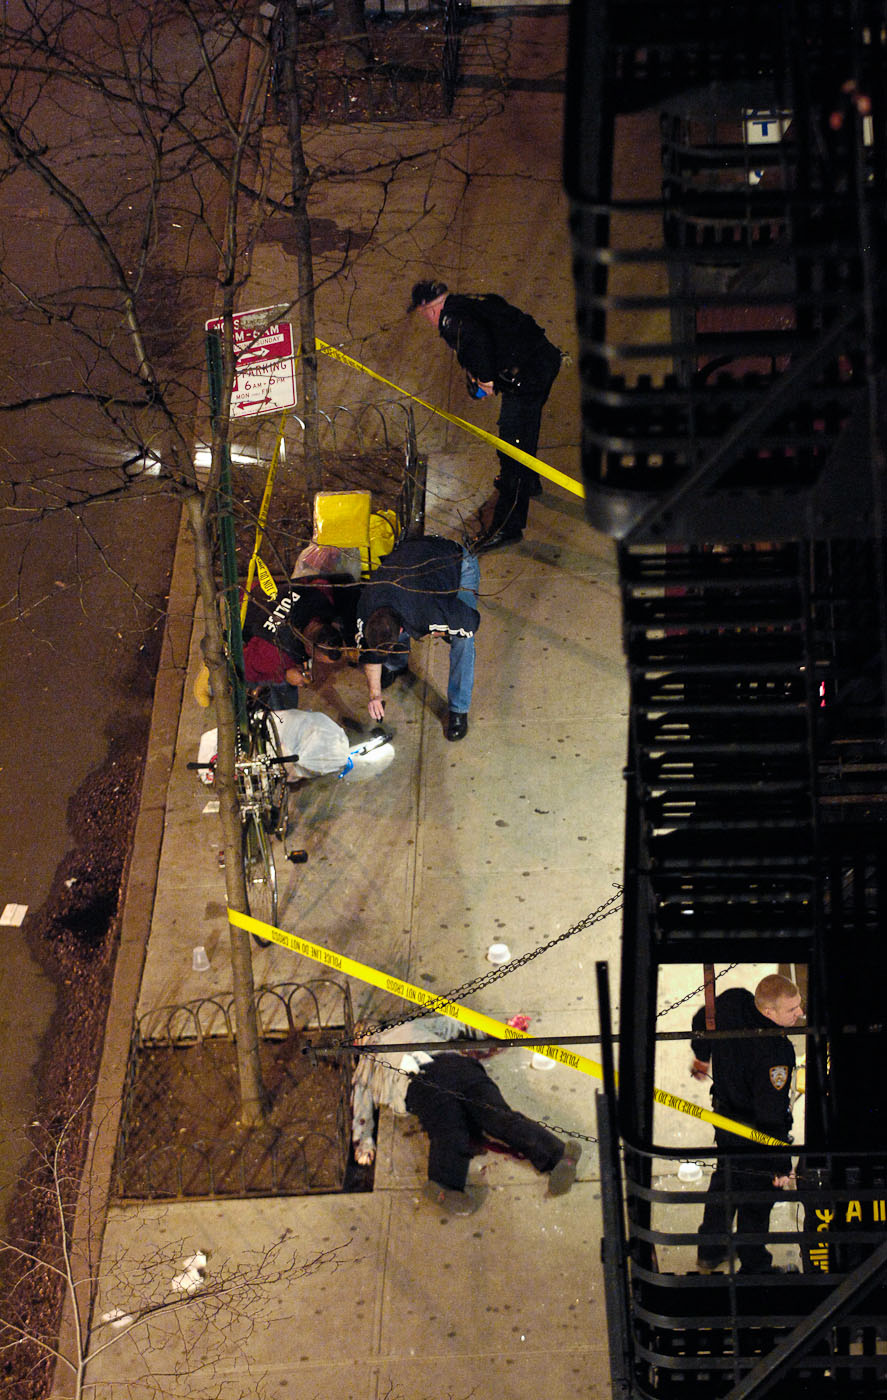 David Garvin lies dead on the sidewalk where he was killed after firing on six plainclothes police officers in New York, NY. Garvin killed a bartender and two auxiliary police officers.